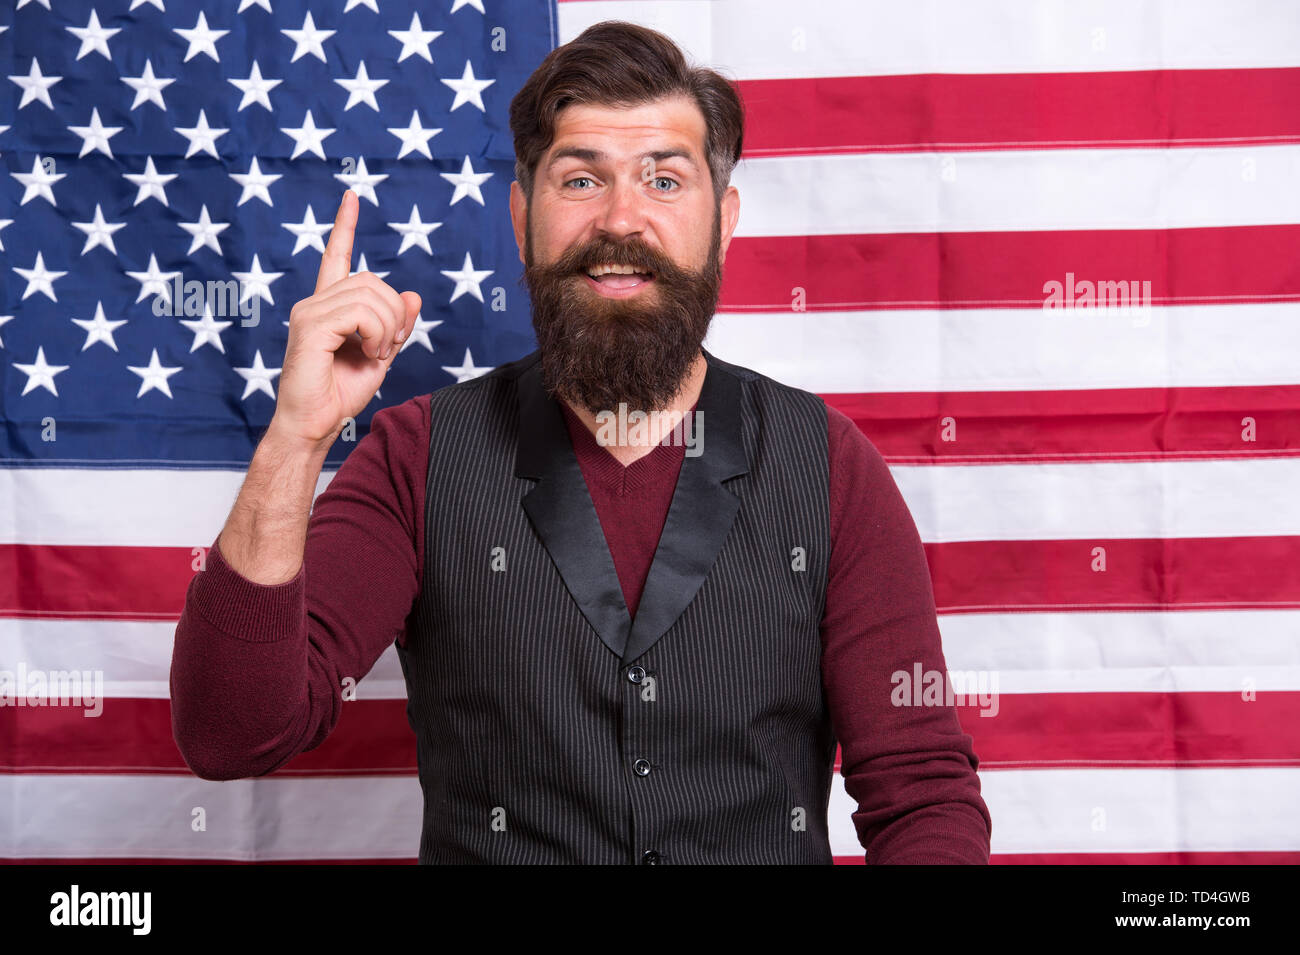 Idea and ideology. Patriotic concept. American lawyer teacher speaker or tv host american flag background. Love homeland. Man with beard and mustache with american flag. Make America great again. - Stock Image